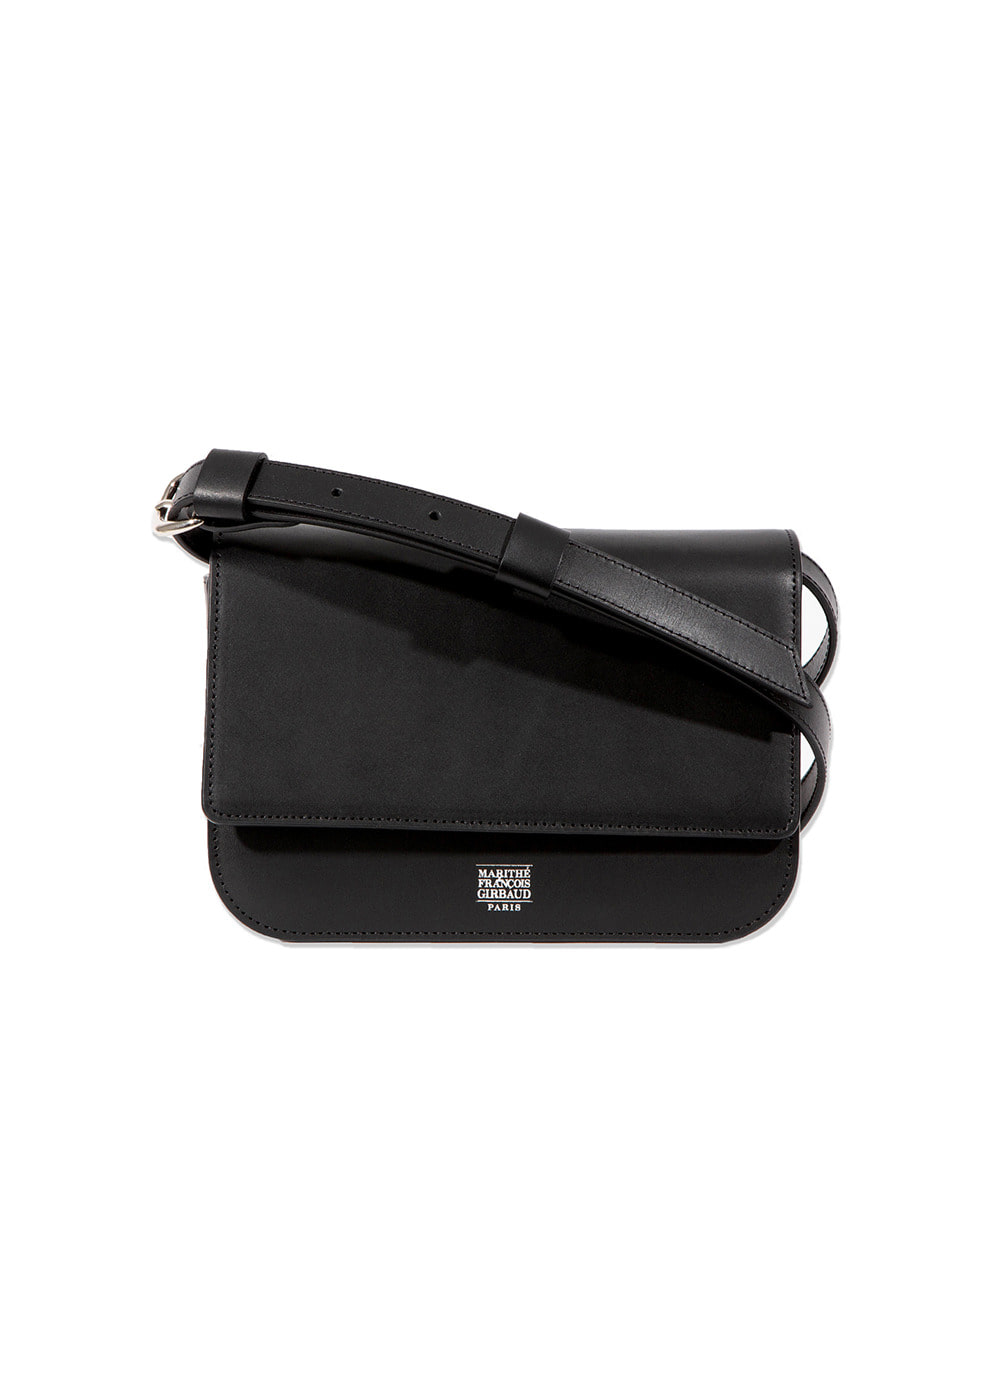 MARITHE LEATHER SHOULDER BAG black